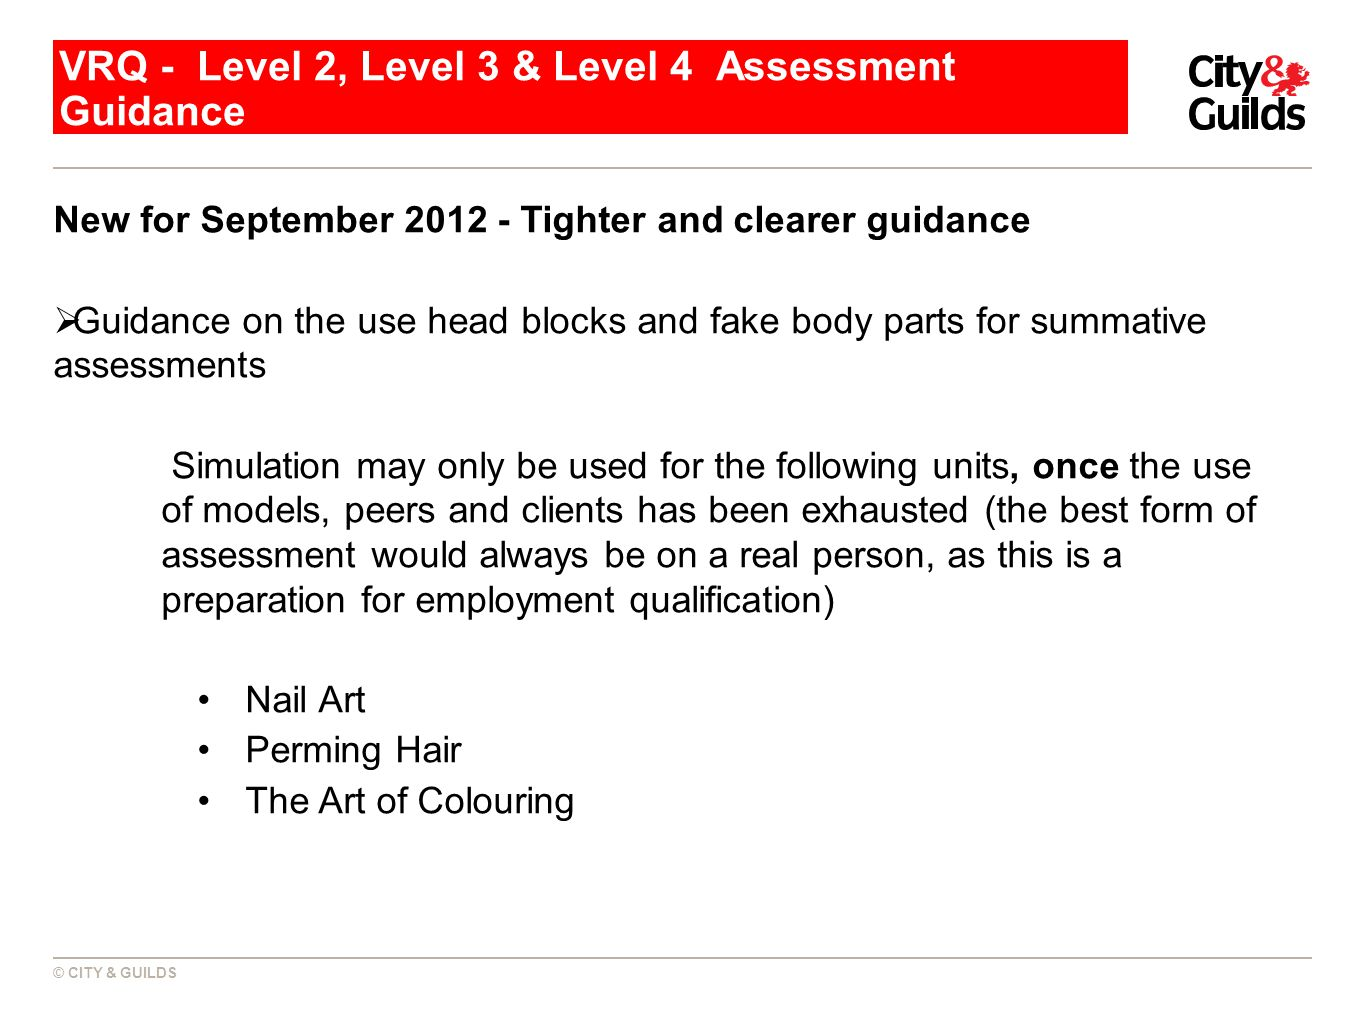 © CITY & GUILDS VRQ - Level 2, Level 3 & Level 4 Assessment Guidance New for September 2012 - Tighter and clearer guidance Guidance on the use head blocks and fake body parts for summative assessments Simulation may only be used for the following units, once the use of models, peers and clients has been exhausted (the best form of assessment would always be on a real person, as this is a preparation for employment qualification) Nail Art Perming Hair The Art of Colouring